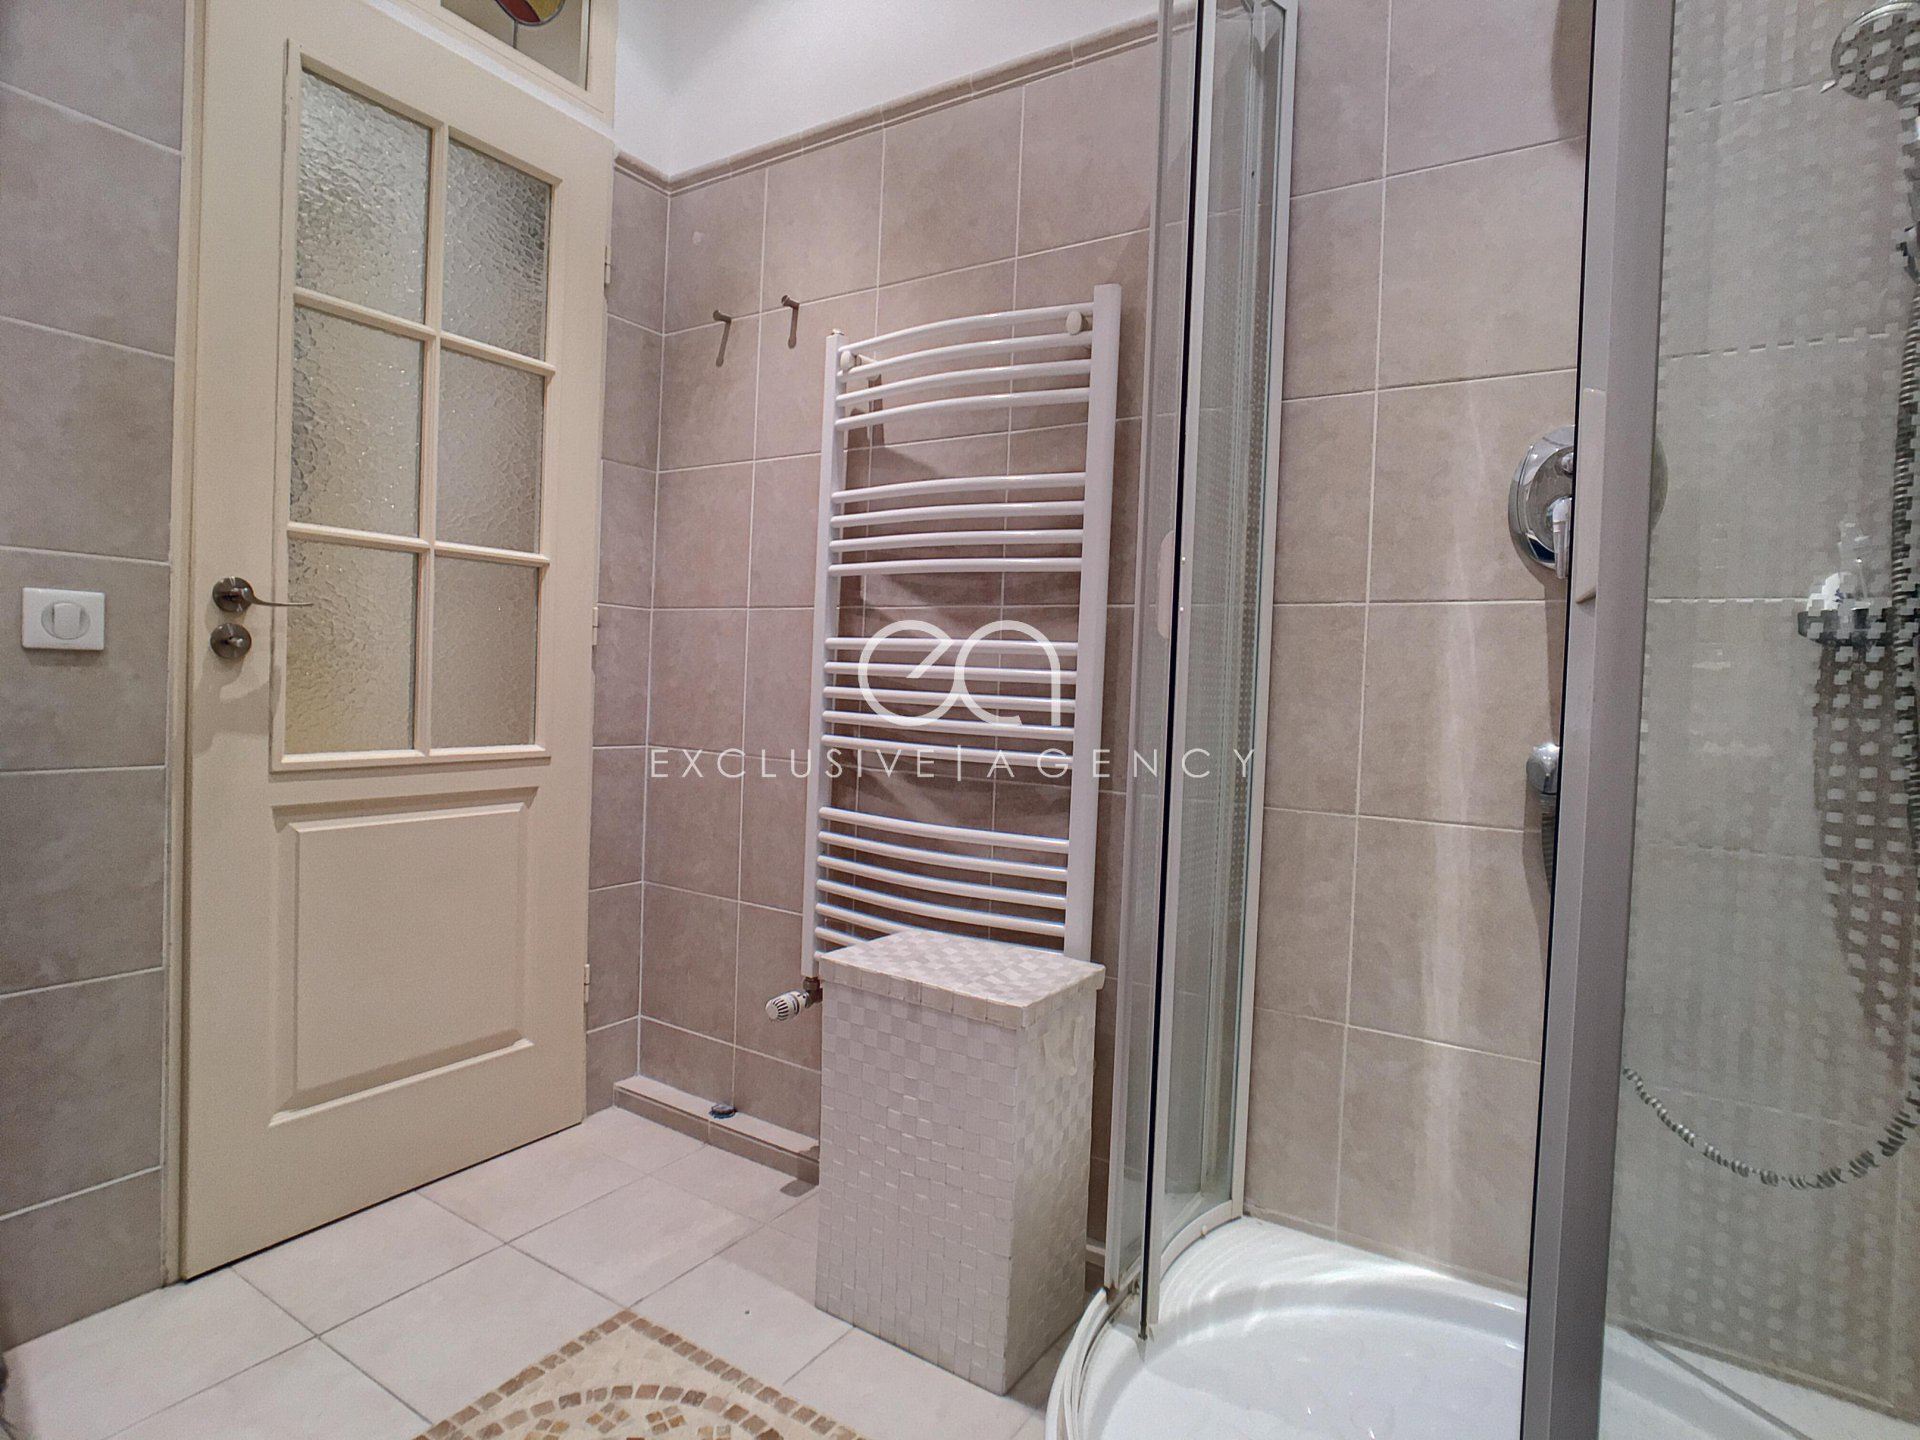 SEASONNAL RENTAL Cannes center 55sqm 2-bedroom apartment for 2 to 4 people